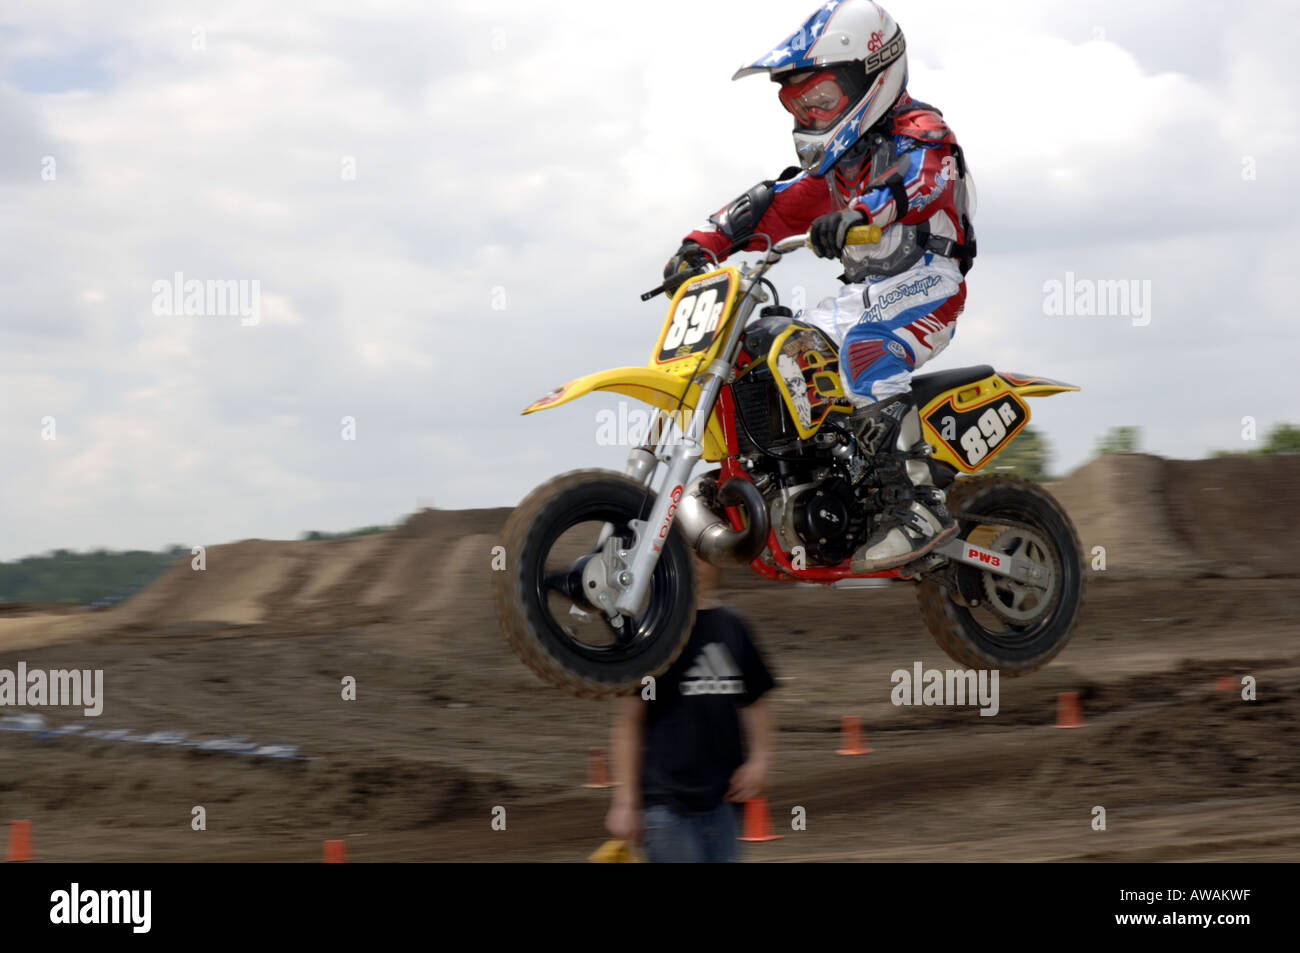 6 year old races on a honda 50 cc motorcyle in motocross race